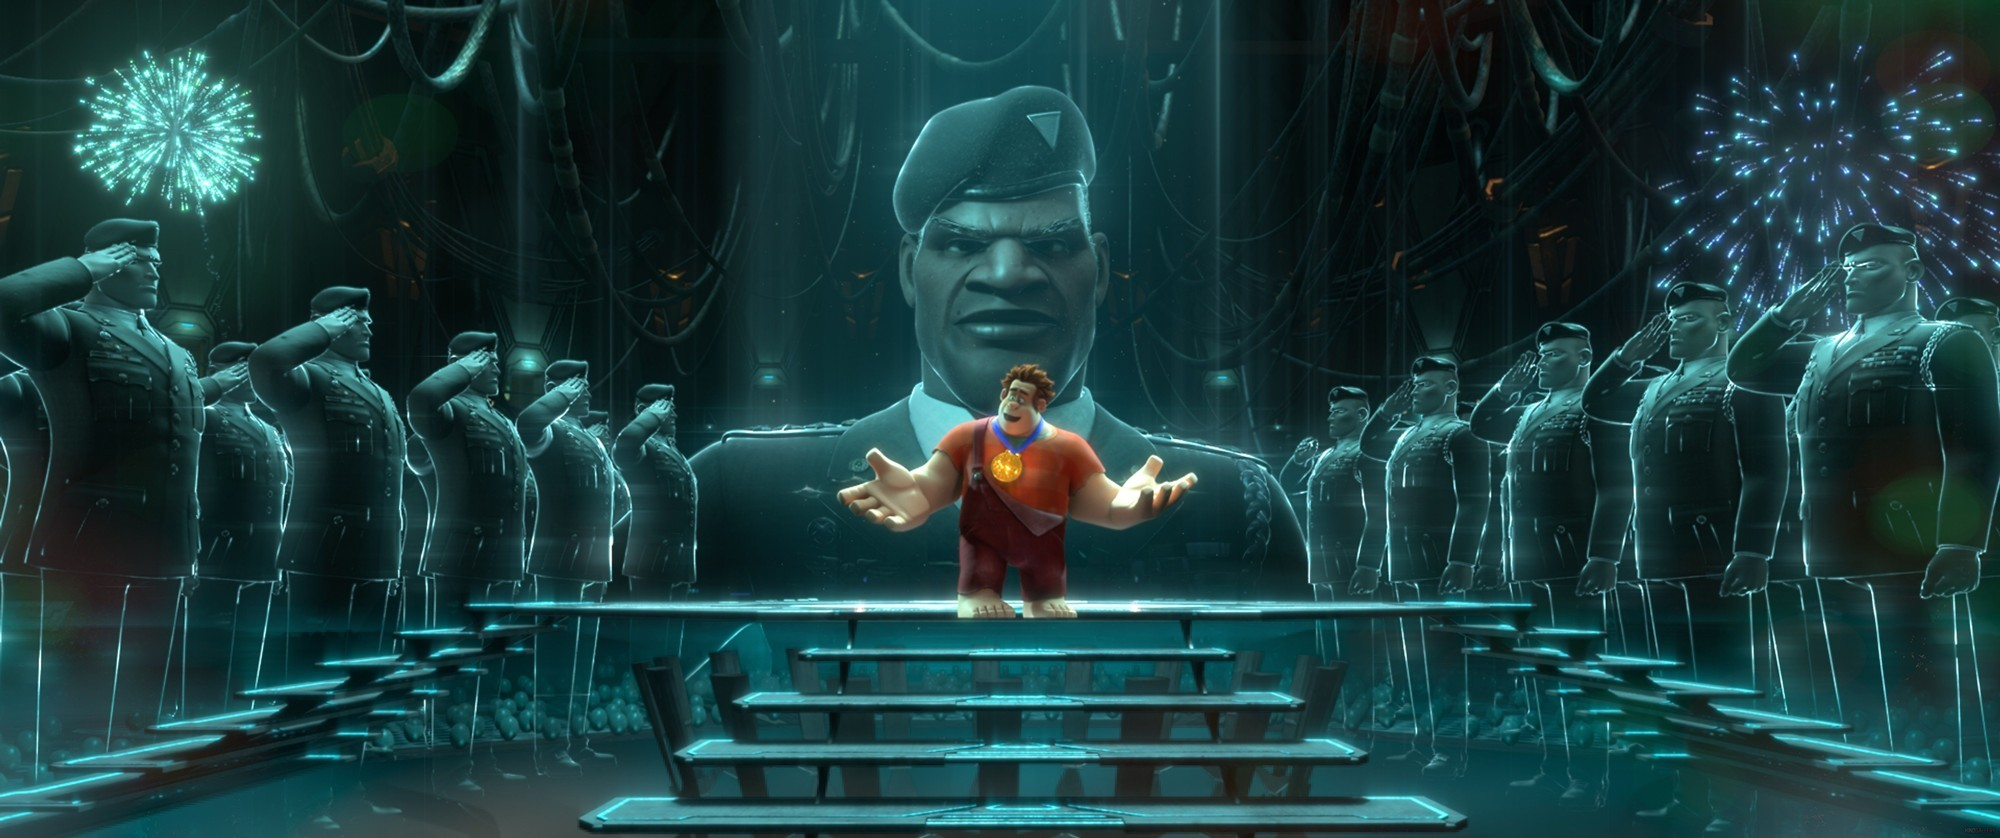 https://i0.wp.com/www.aceshowbiz.com/images/still/wreck-it-ralph-image01.jpg